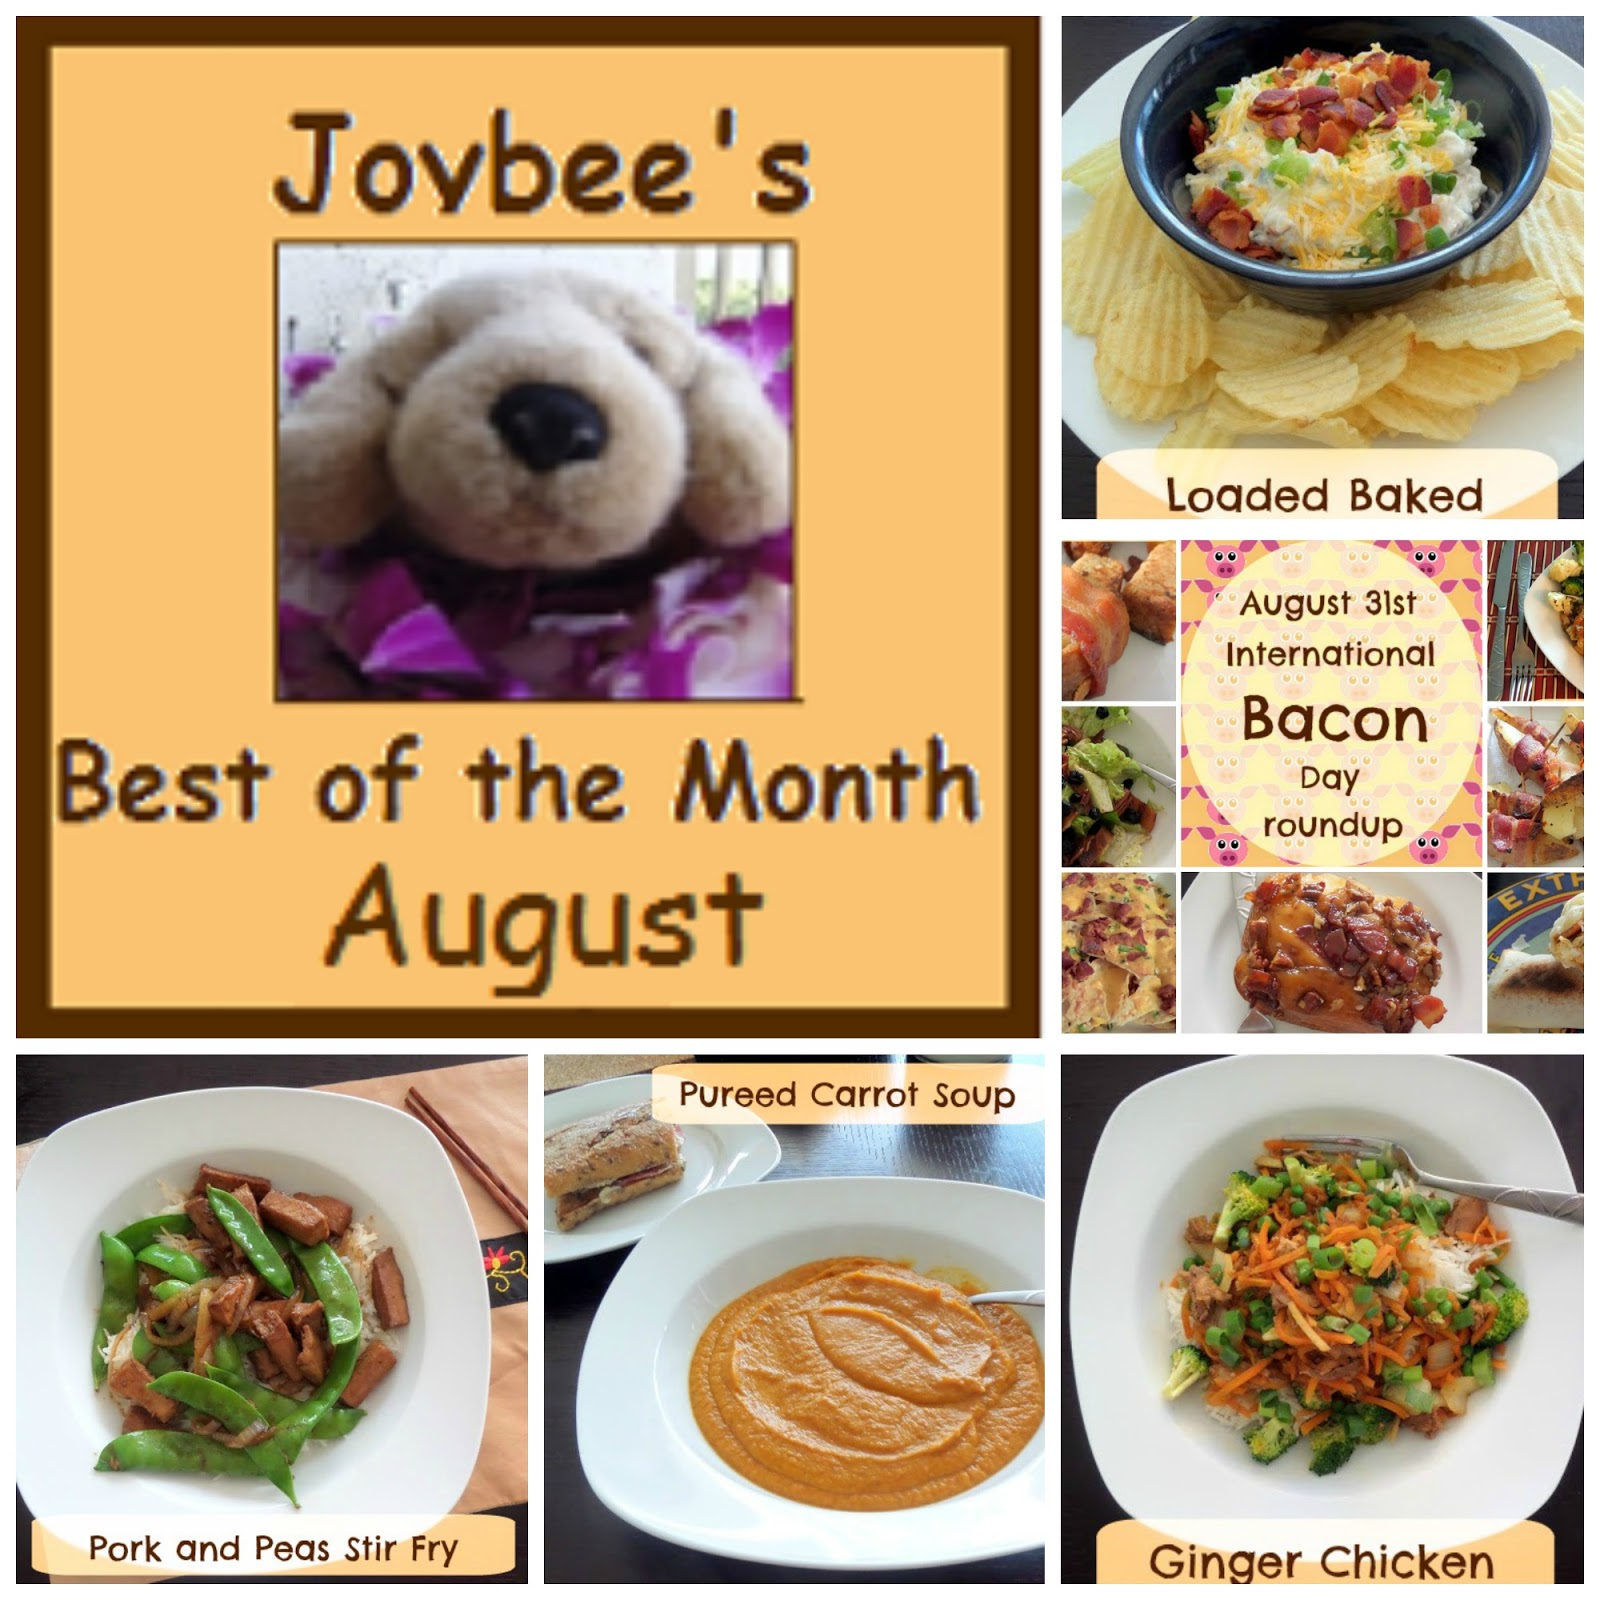 Best of the Month August 2014:  A recap of my most popular posts from August 2014